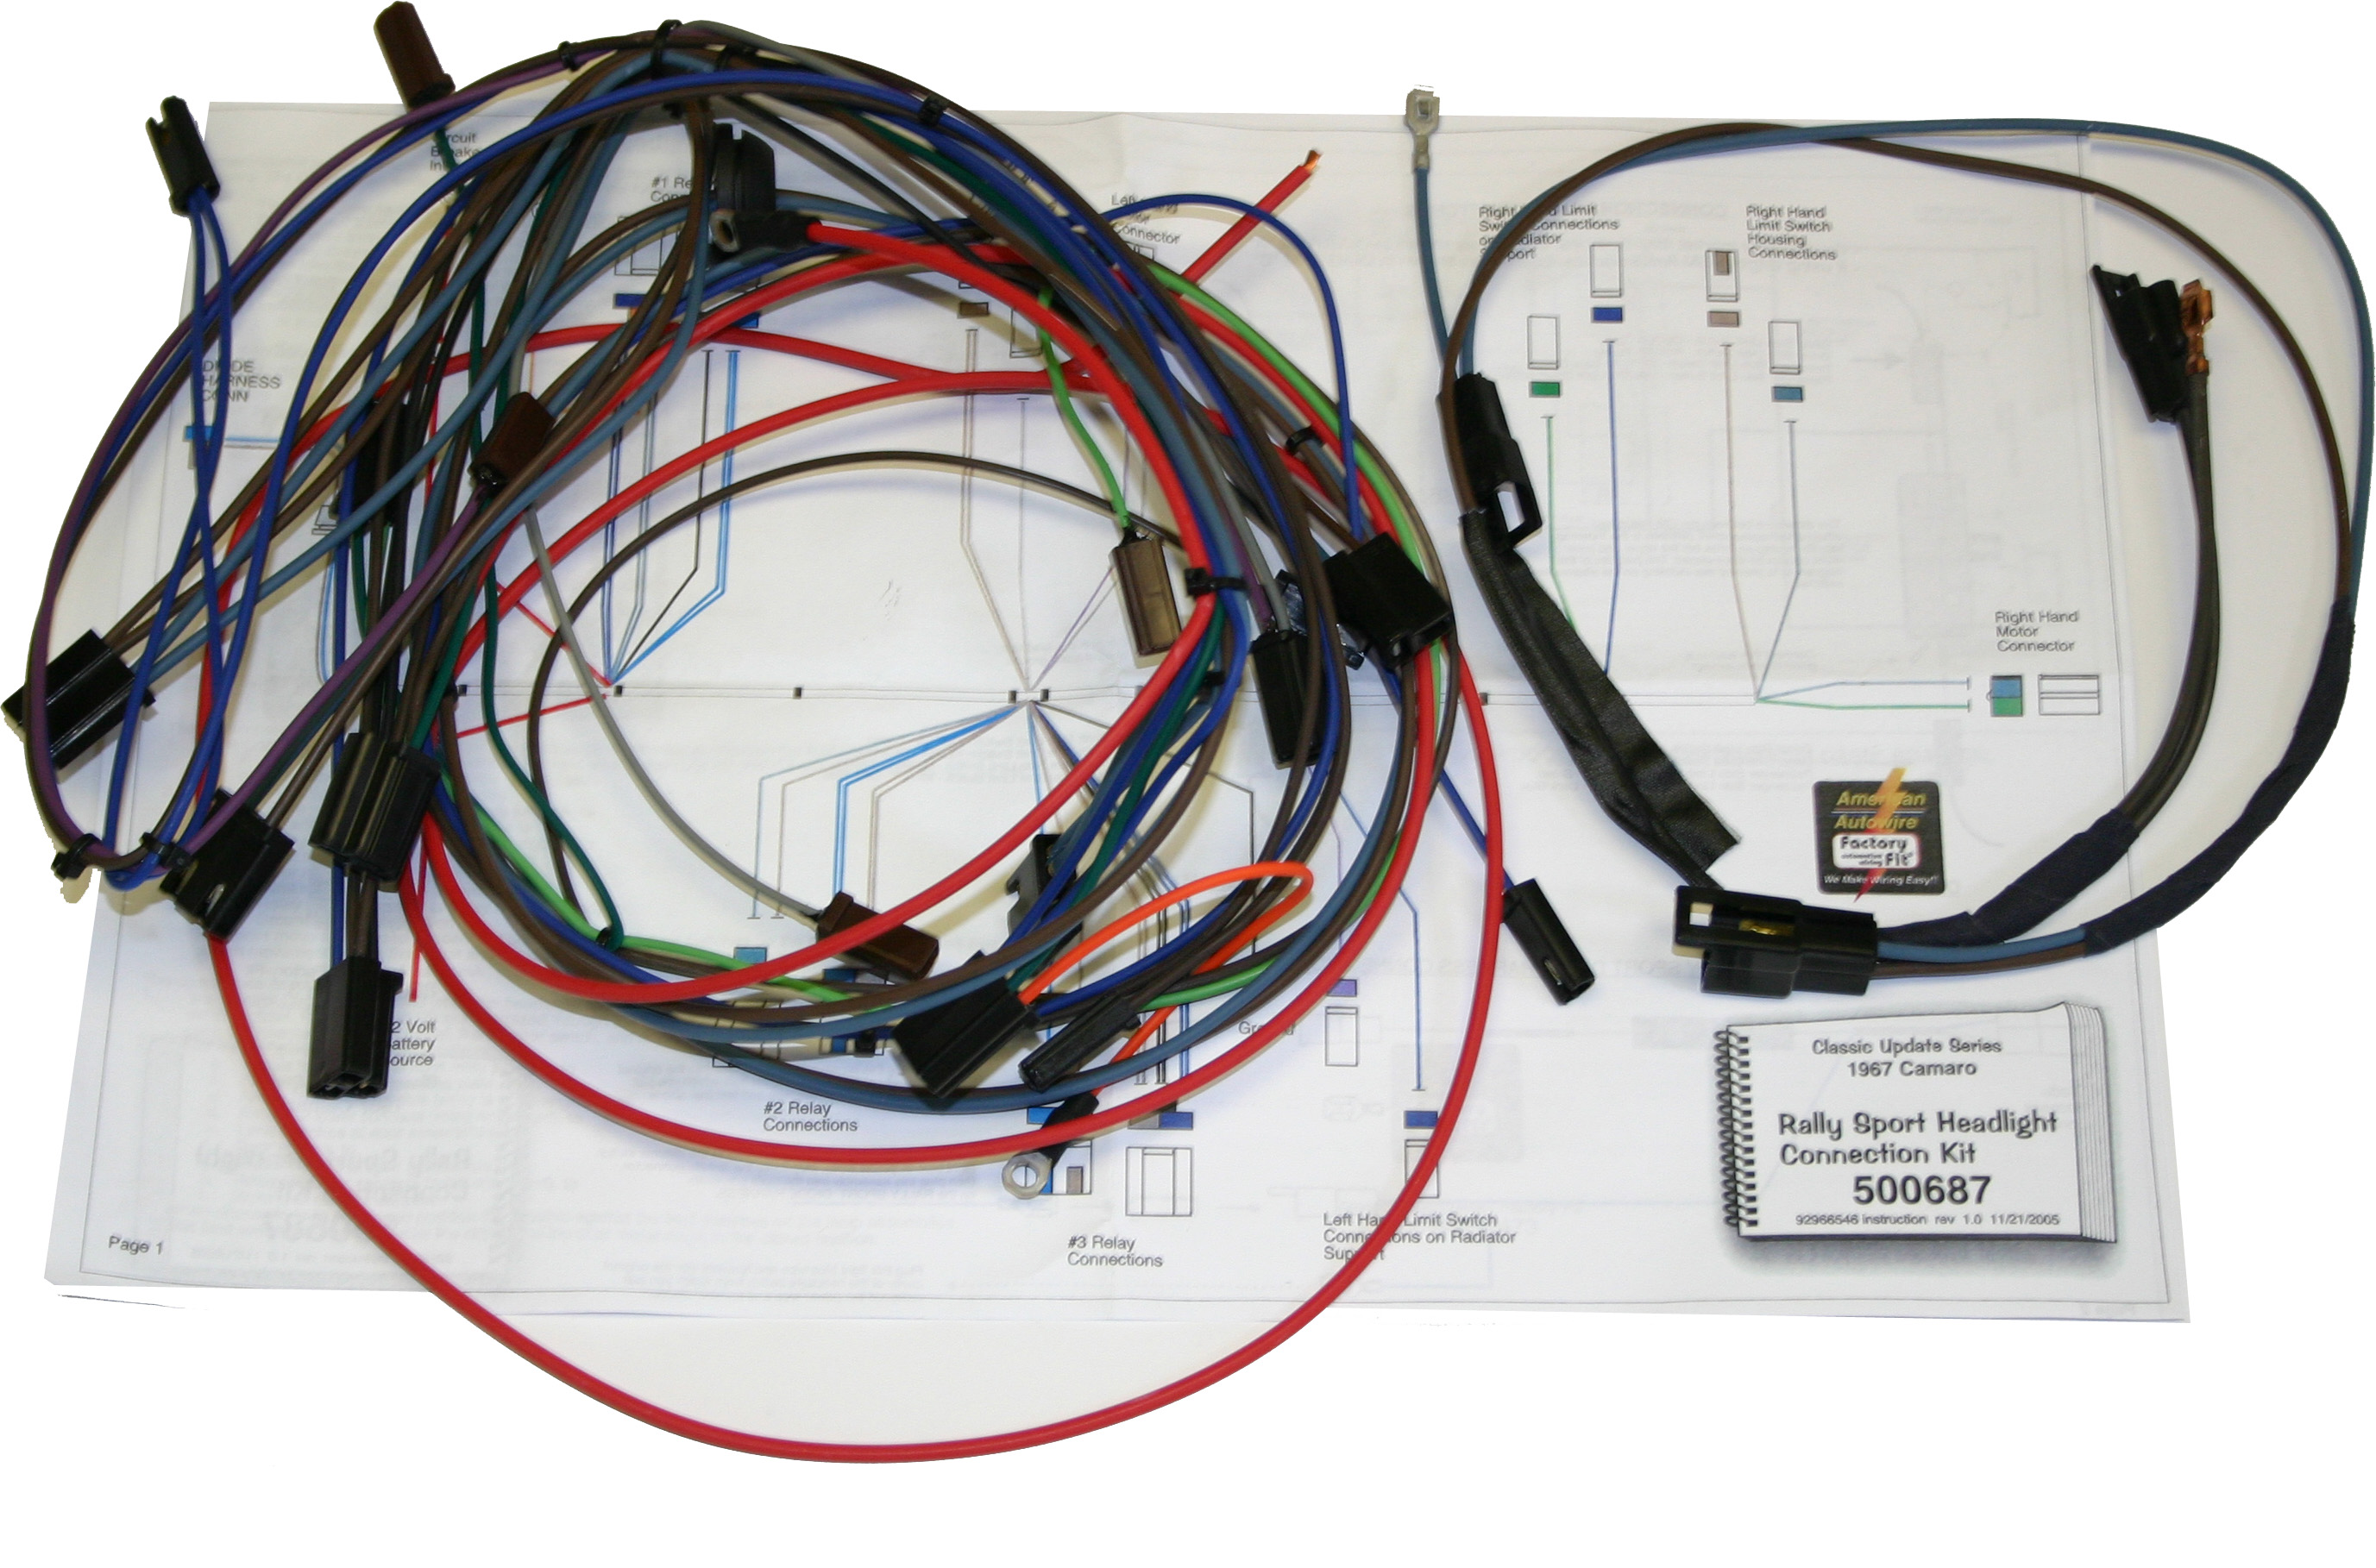 68 camaro wiring harness aftermarket example electrical wiring rh cranejapan co 68 camaro painless wiring harness 68 camaro painless wiring harness diagram